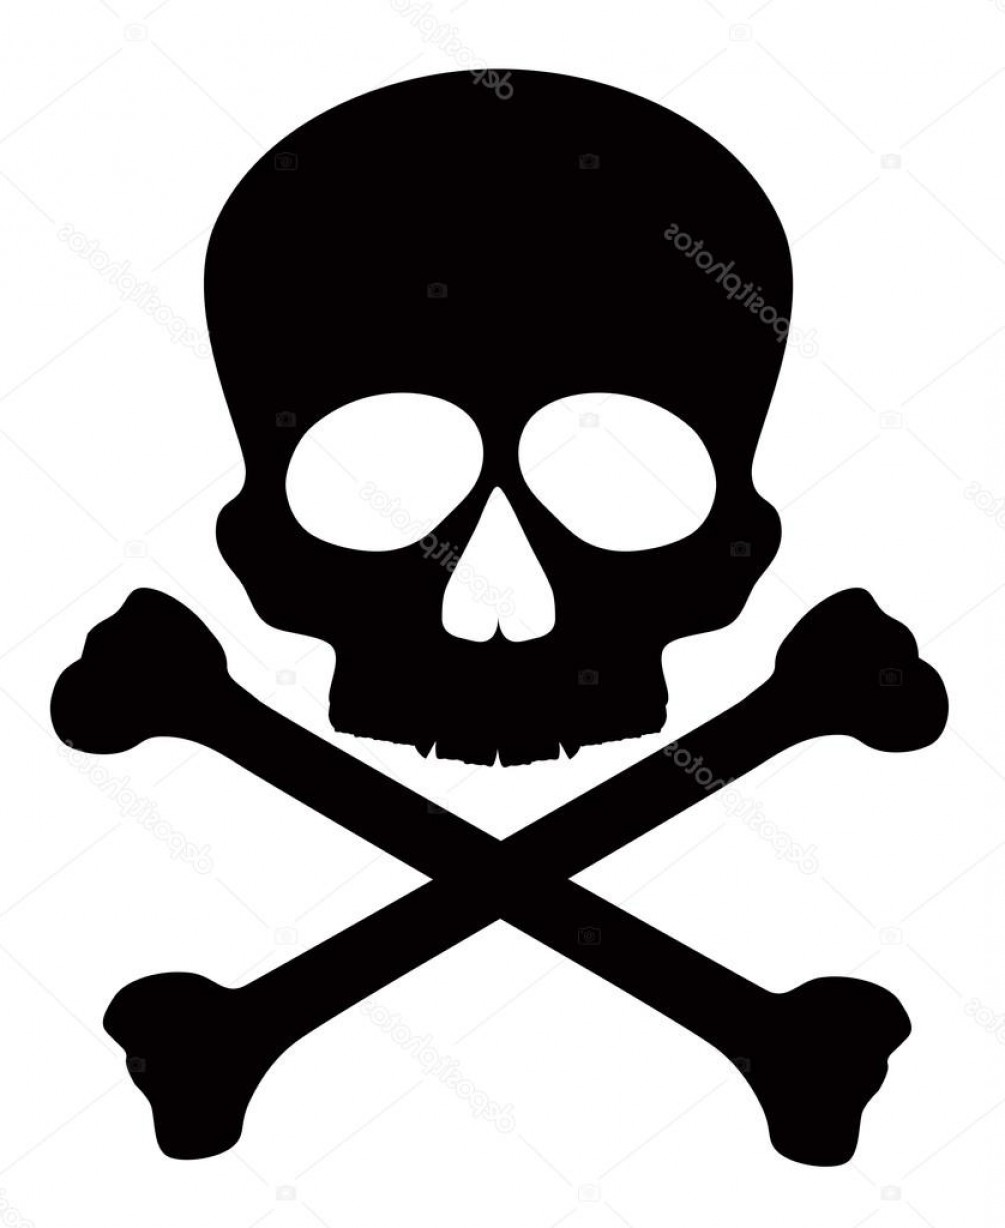 Skull ND Crossbones Vector: Stock Illustration Skull With Crossbones Vector Illustration